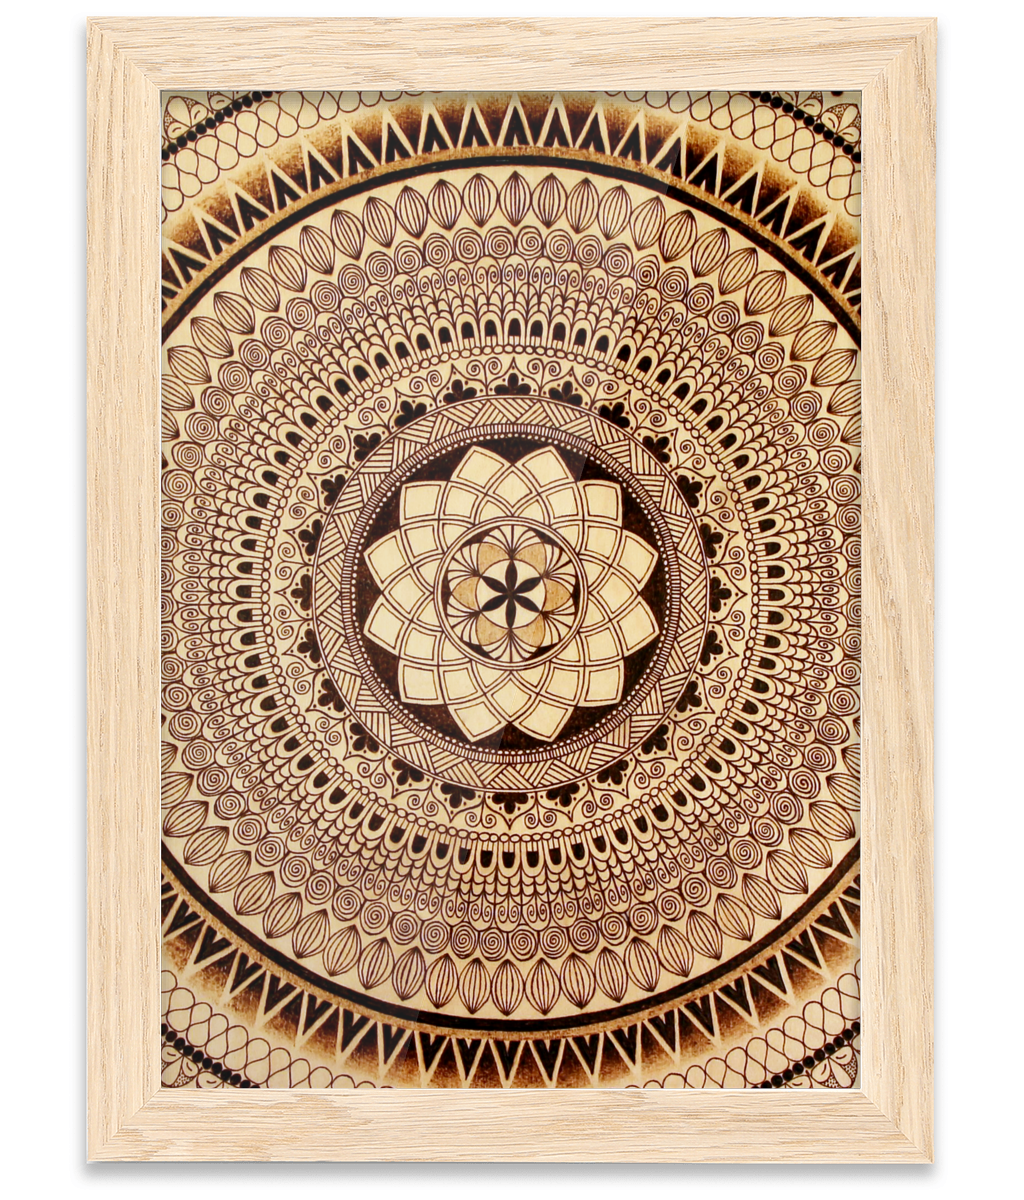 Oak Frame A4 Fine Art Print - Earth Mandala - Rebecca Leah Designs